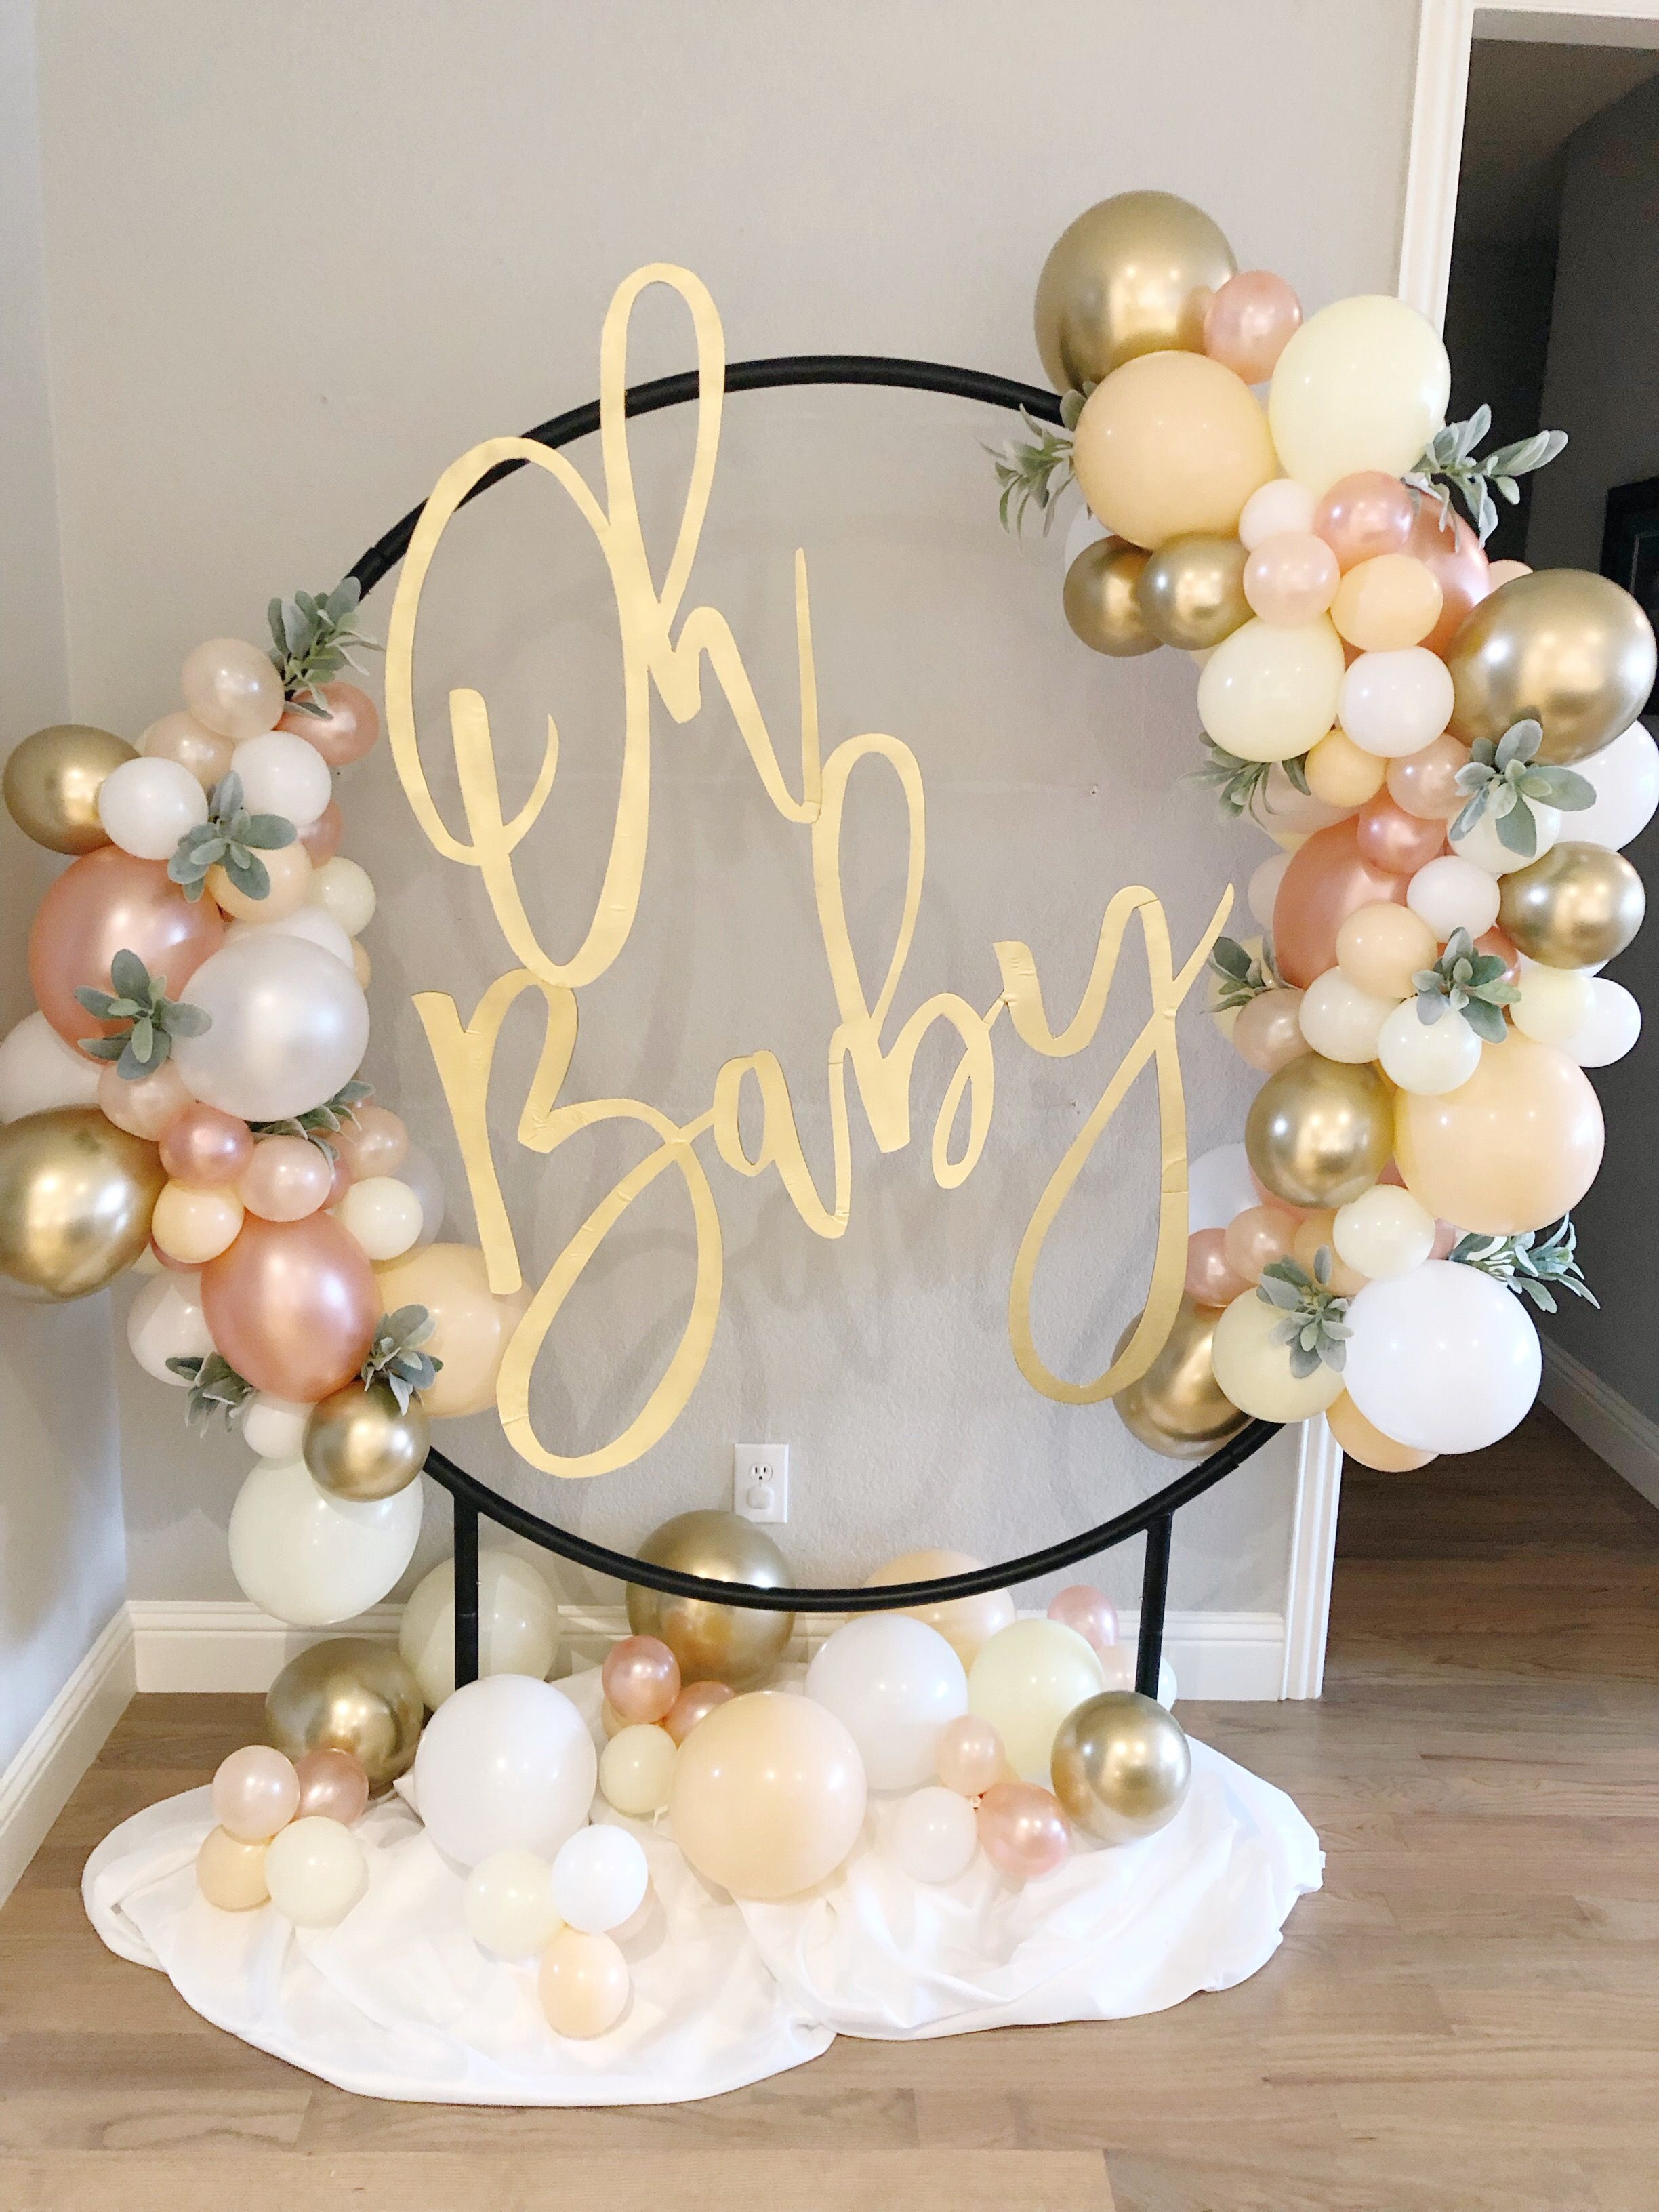 Gold Baby Shower Decorations Pastel /& Gold Hello Baby Balloon Baby Shower Balloons Gold Baby Shower Balloons Gold Oh Baby Decor